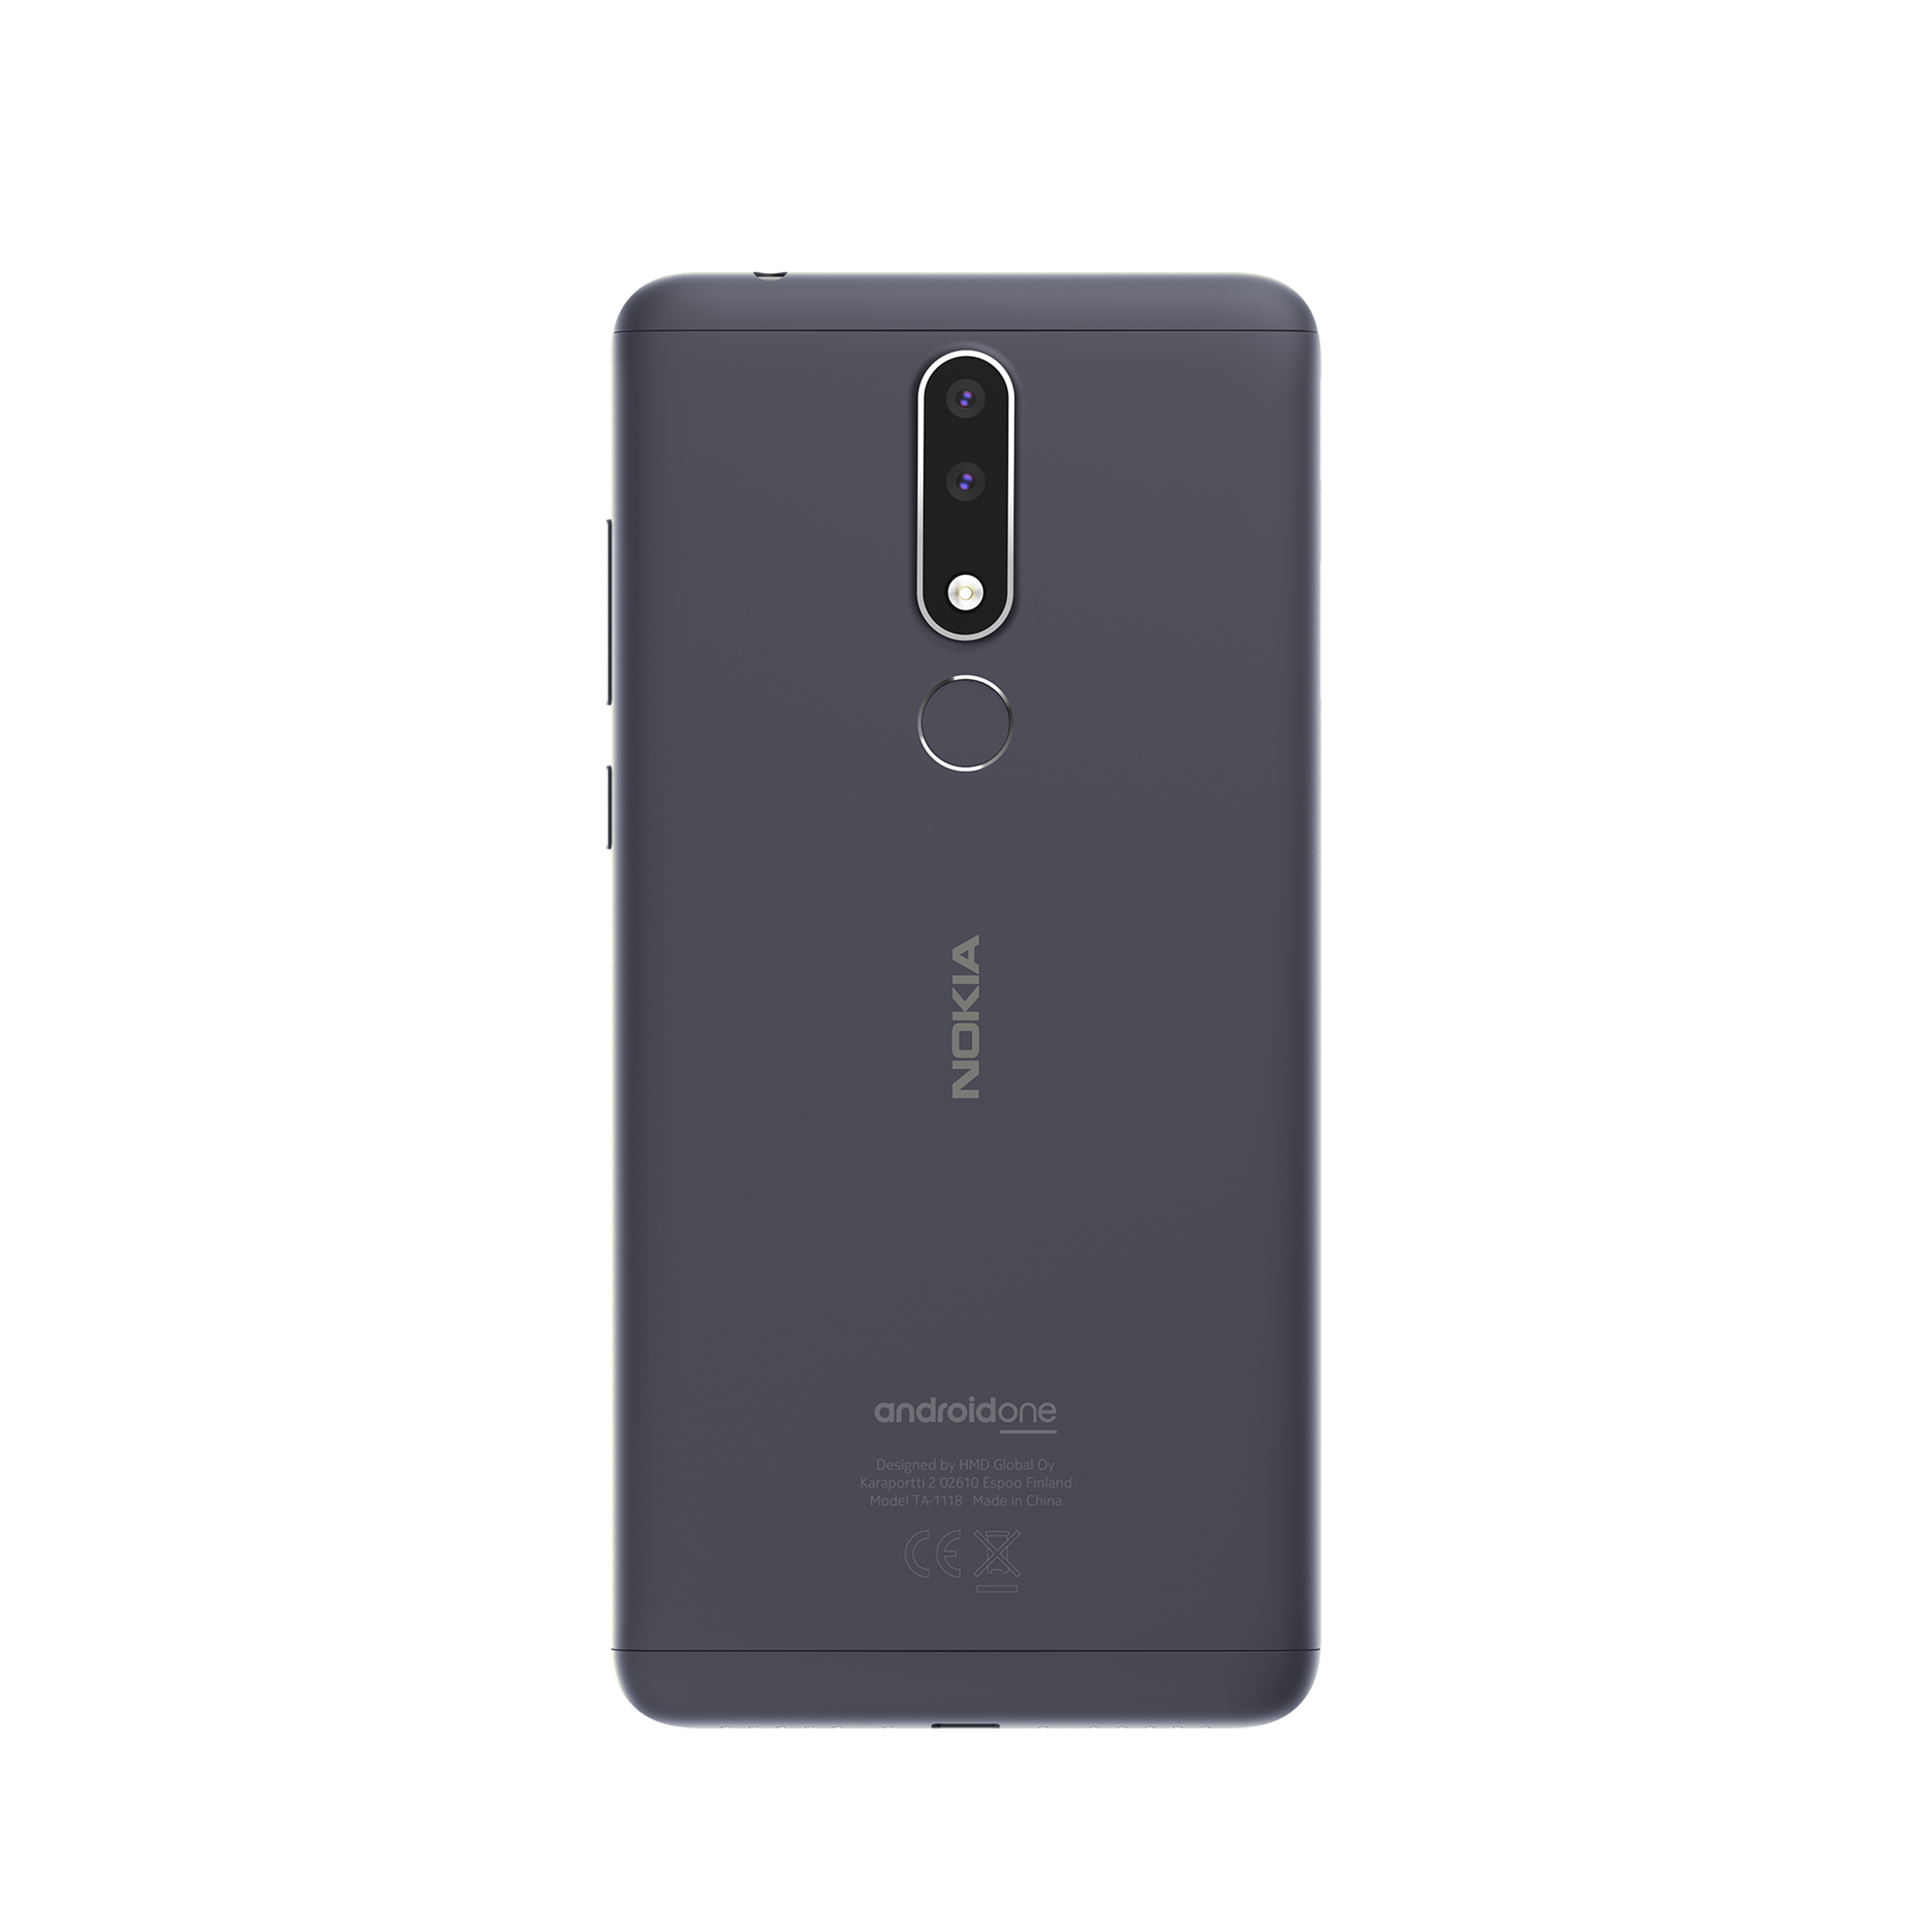 Nokia 3.1 Plus announced with 6-inch display and Android Oreo